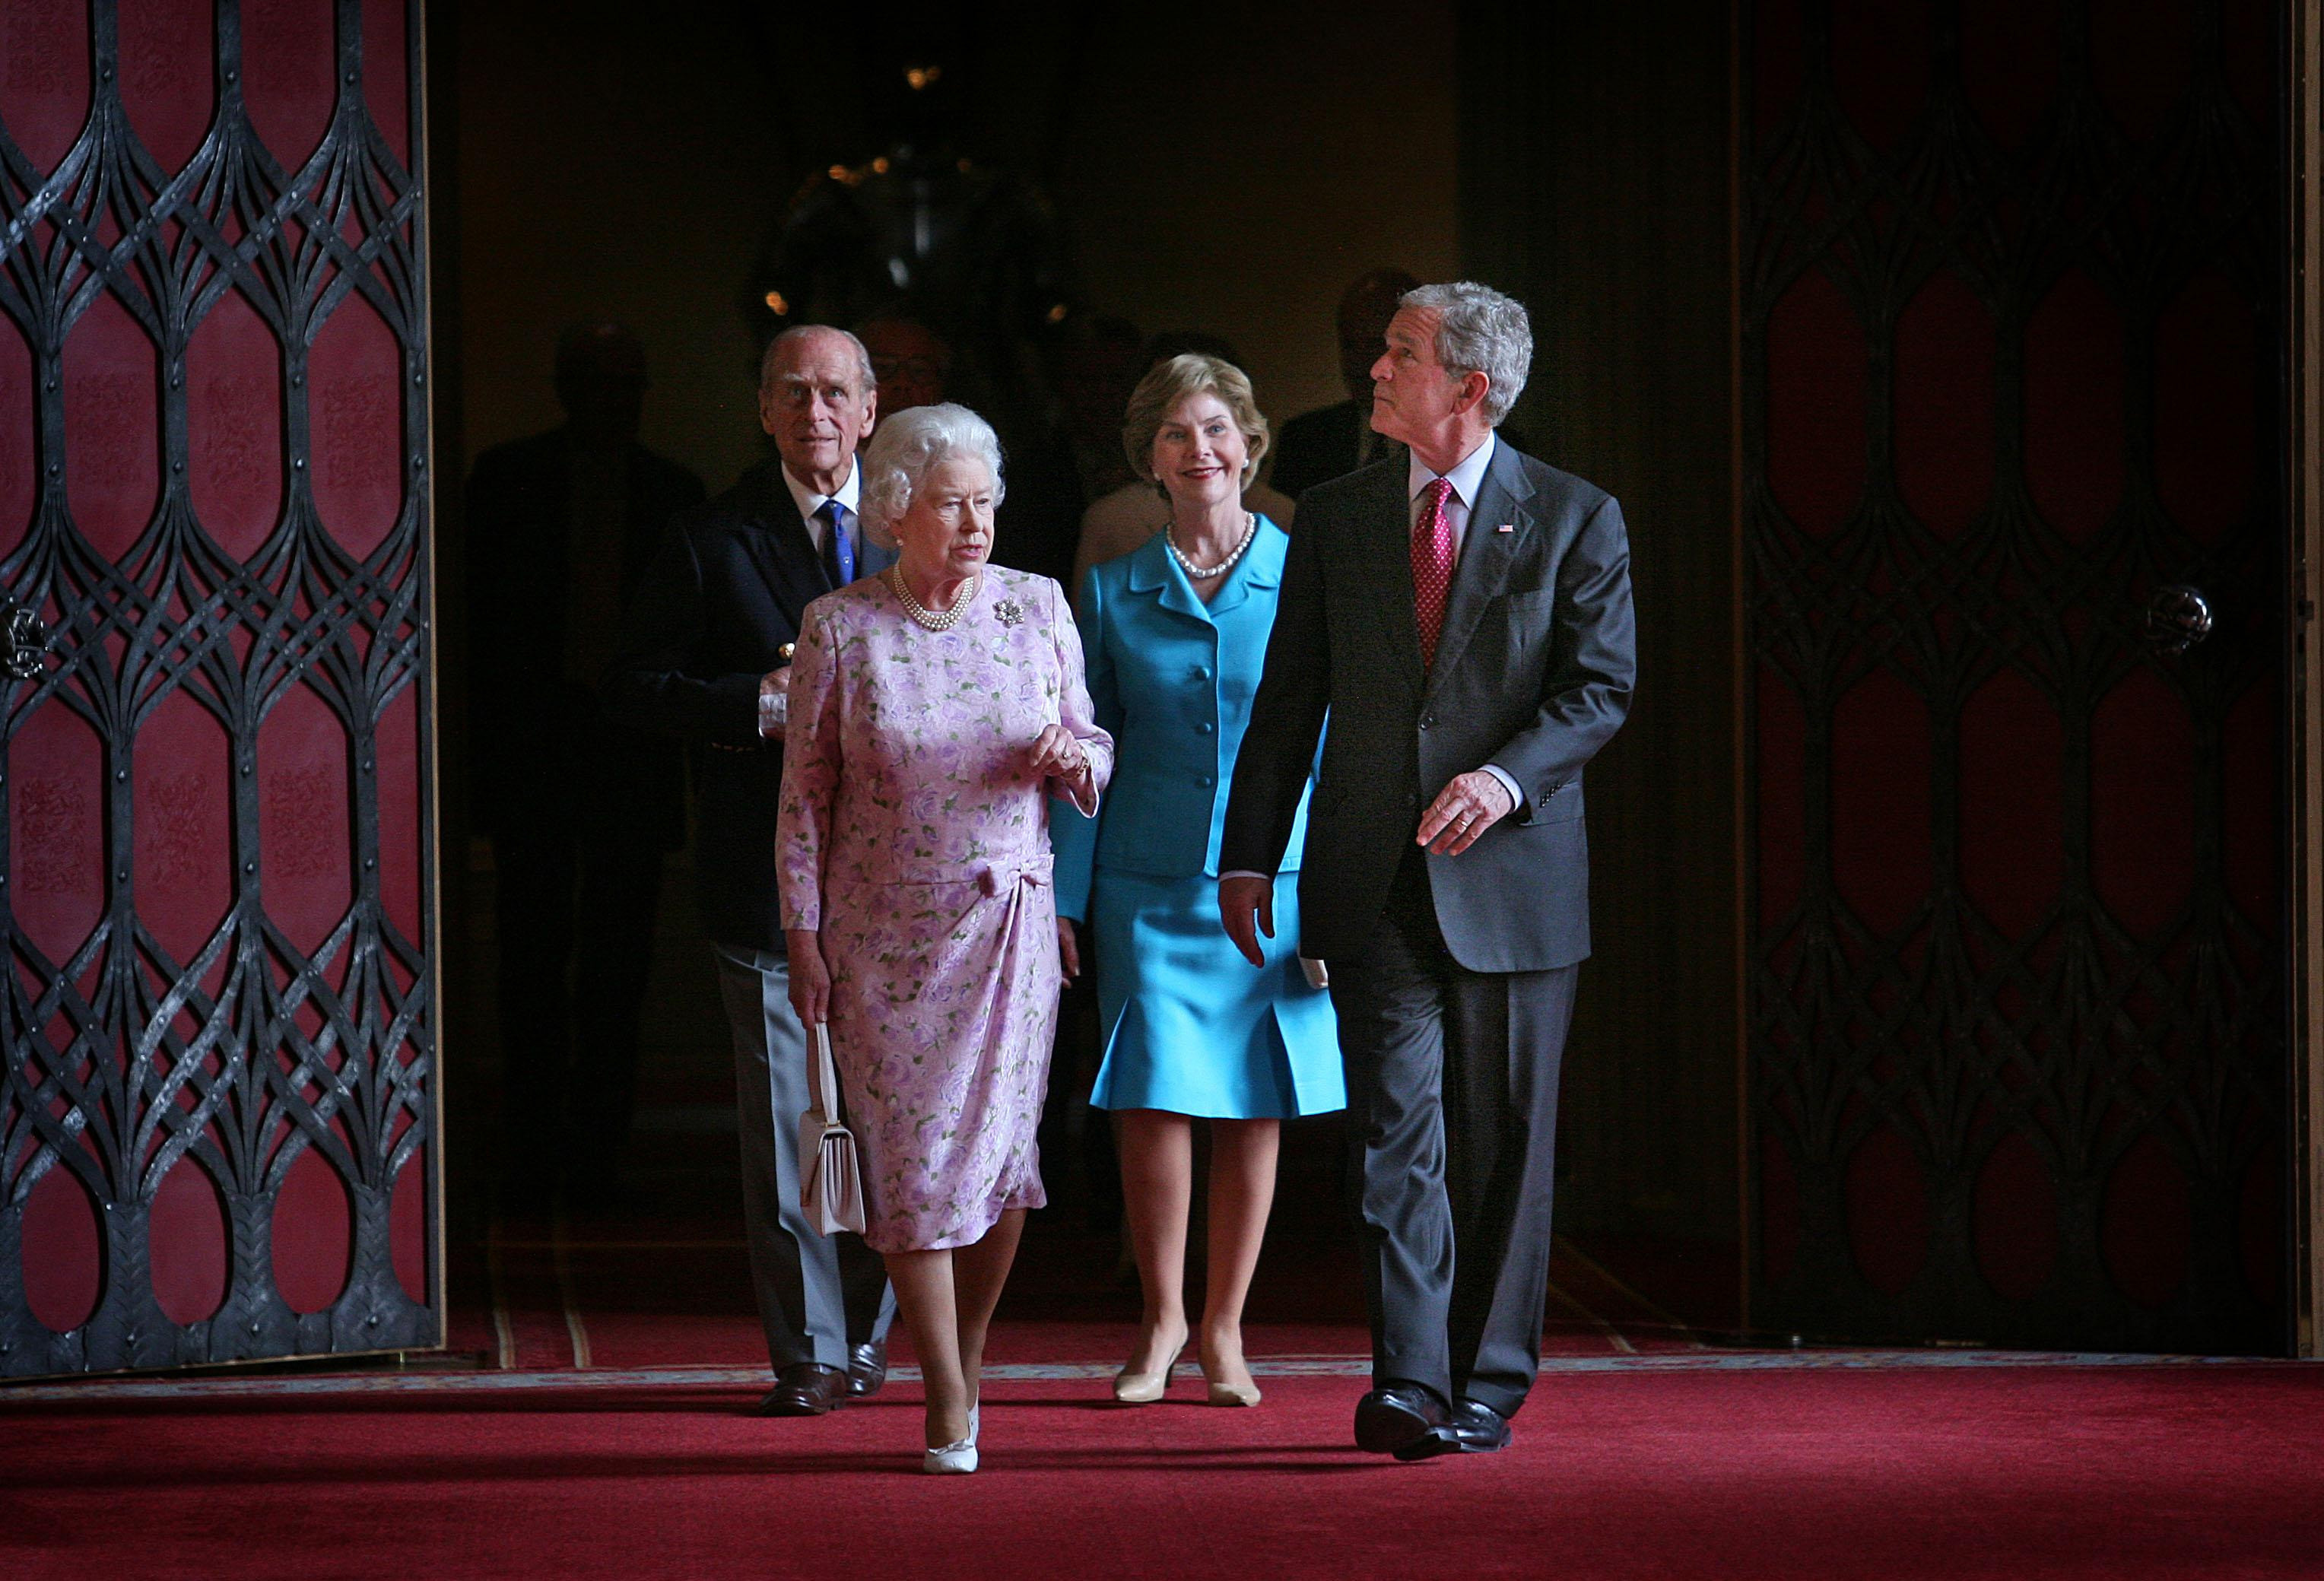 The Queen and President George W. Bush